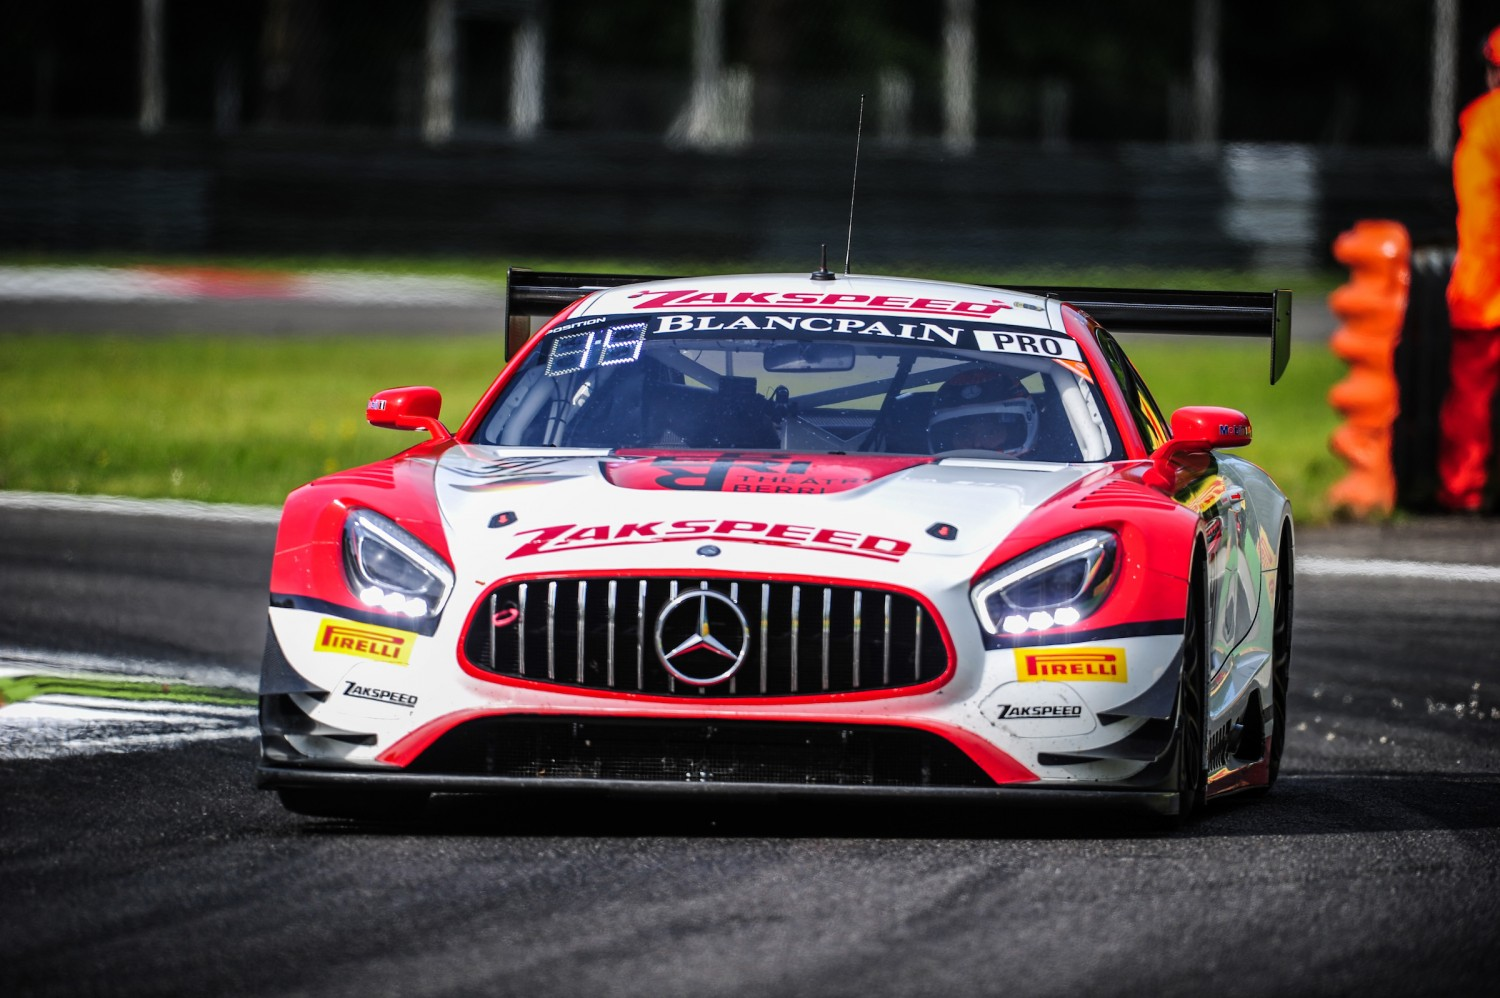 Blancpain GT Series Endurance Cup and Total 24 Hours of Spa for Team Zakspeed